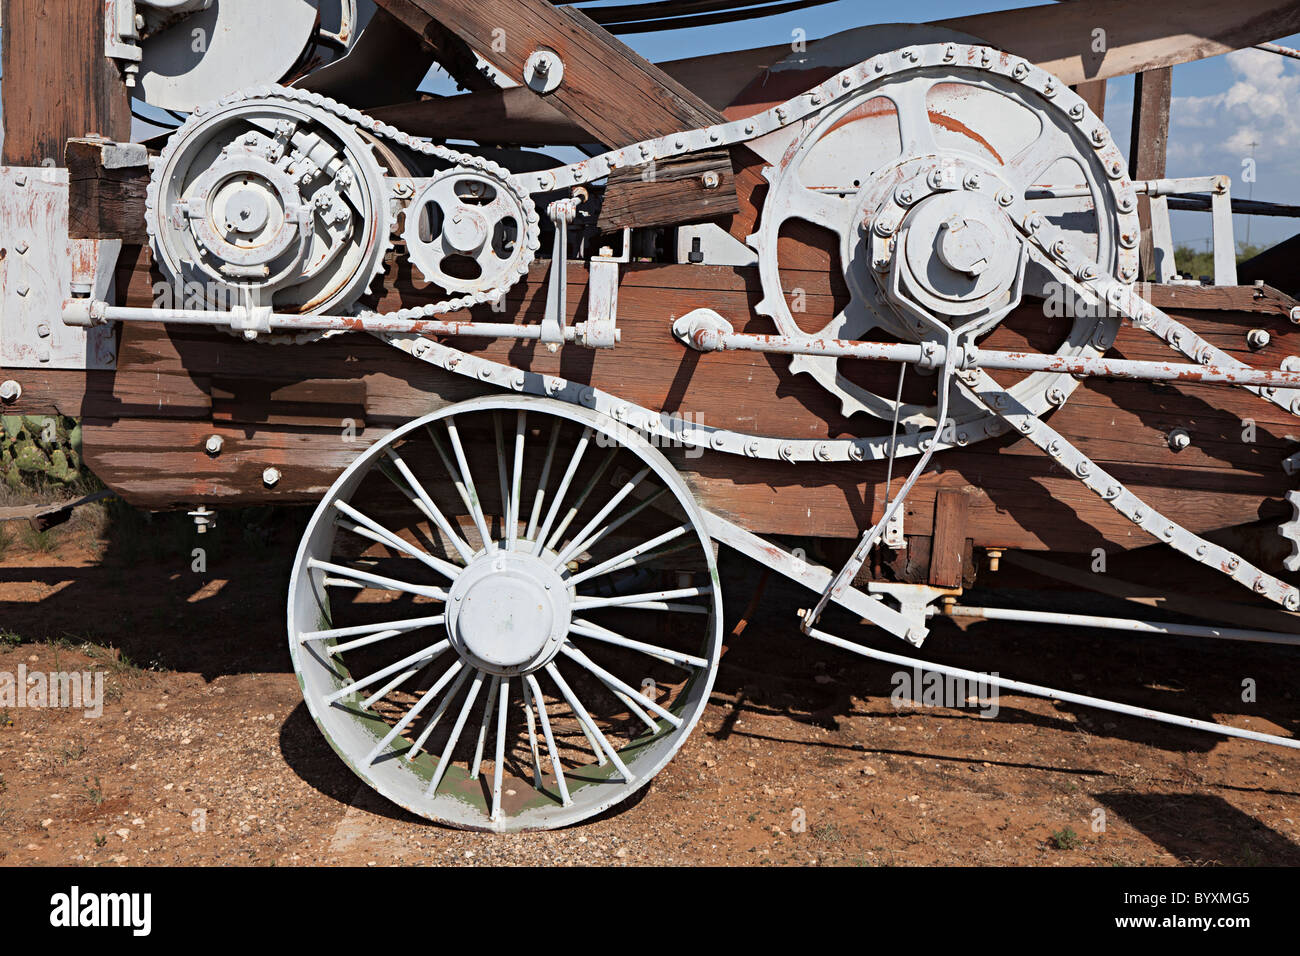 Detail of wheels gears and chains on Star Spudder 45C drilling machine Permian Basin Petroleum Museum Midland Texas - Stock Image